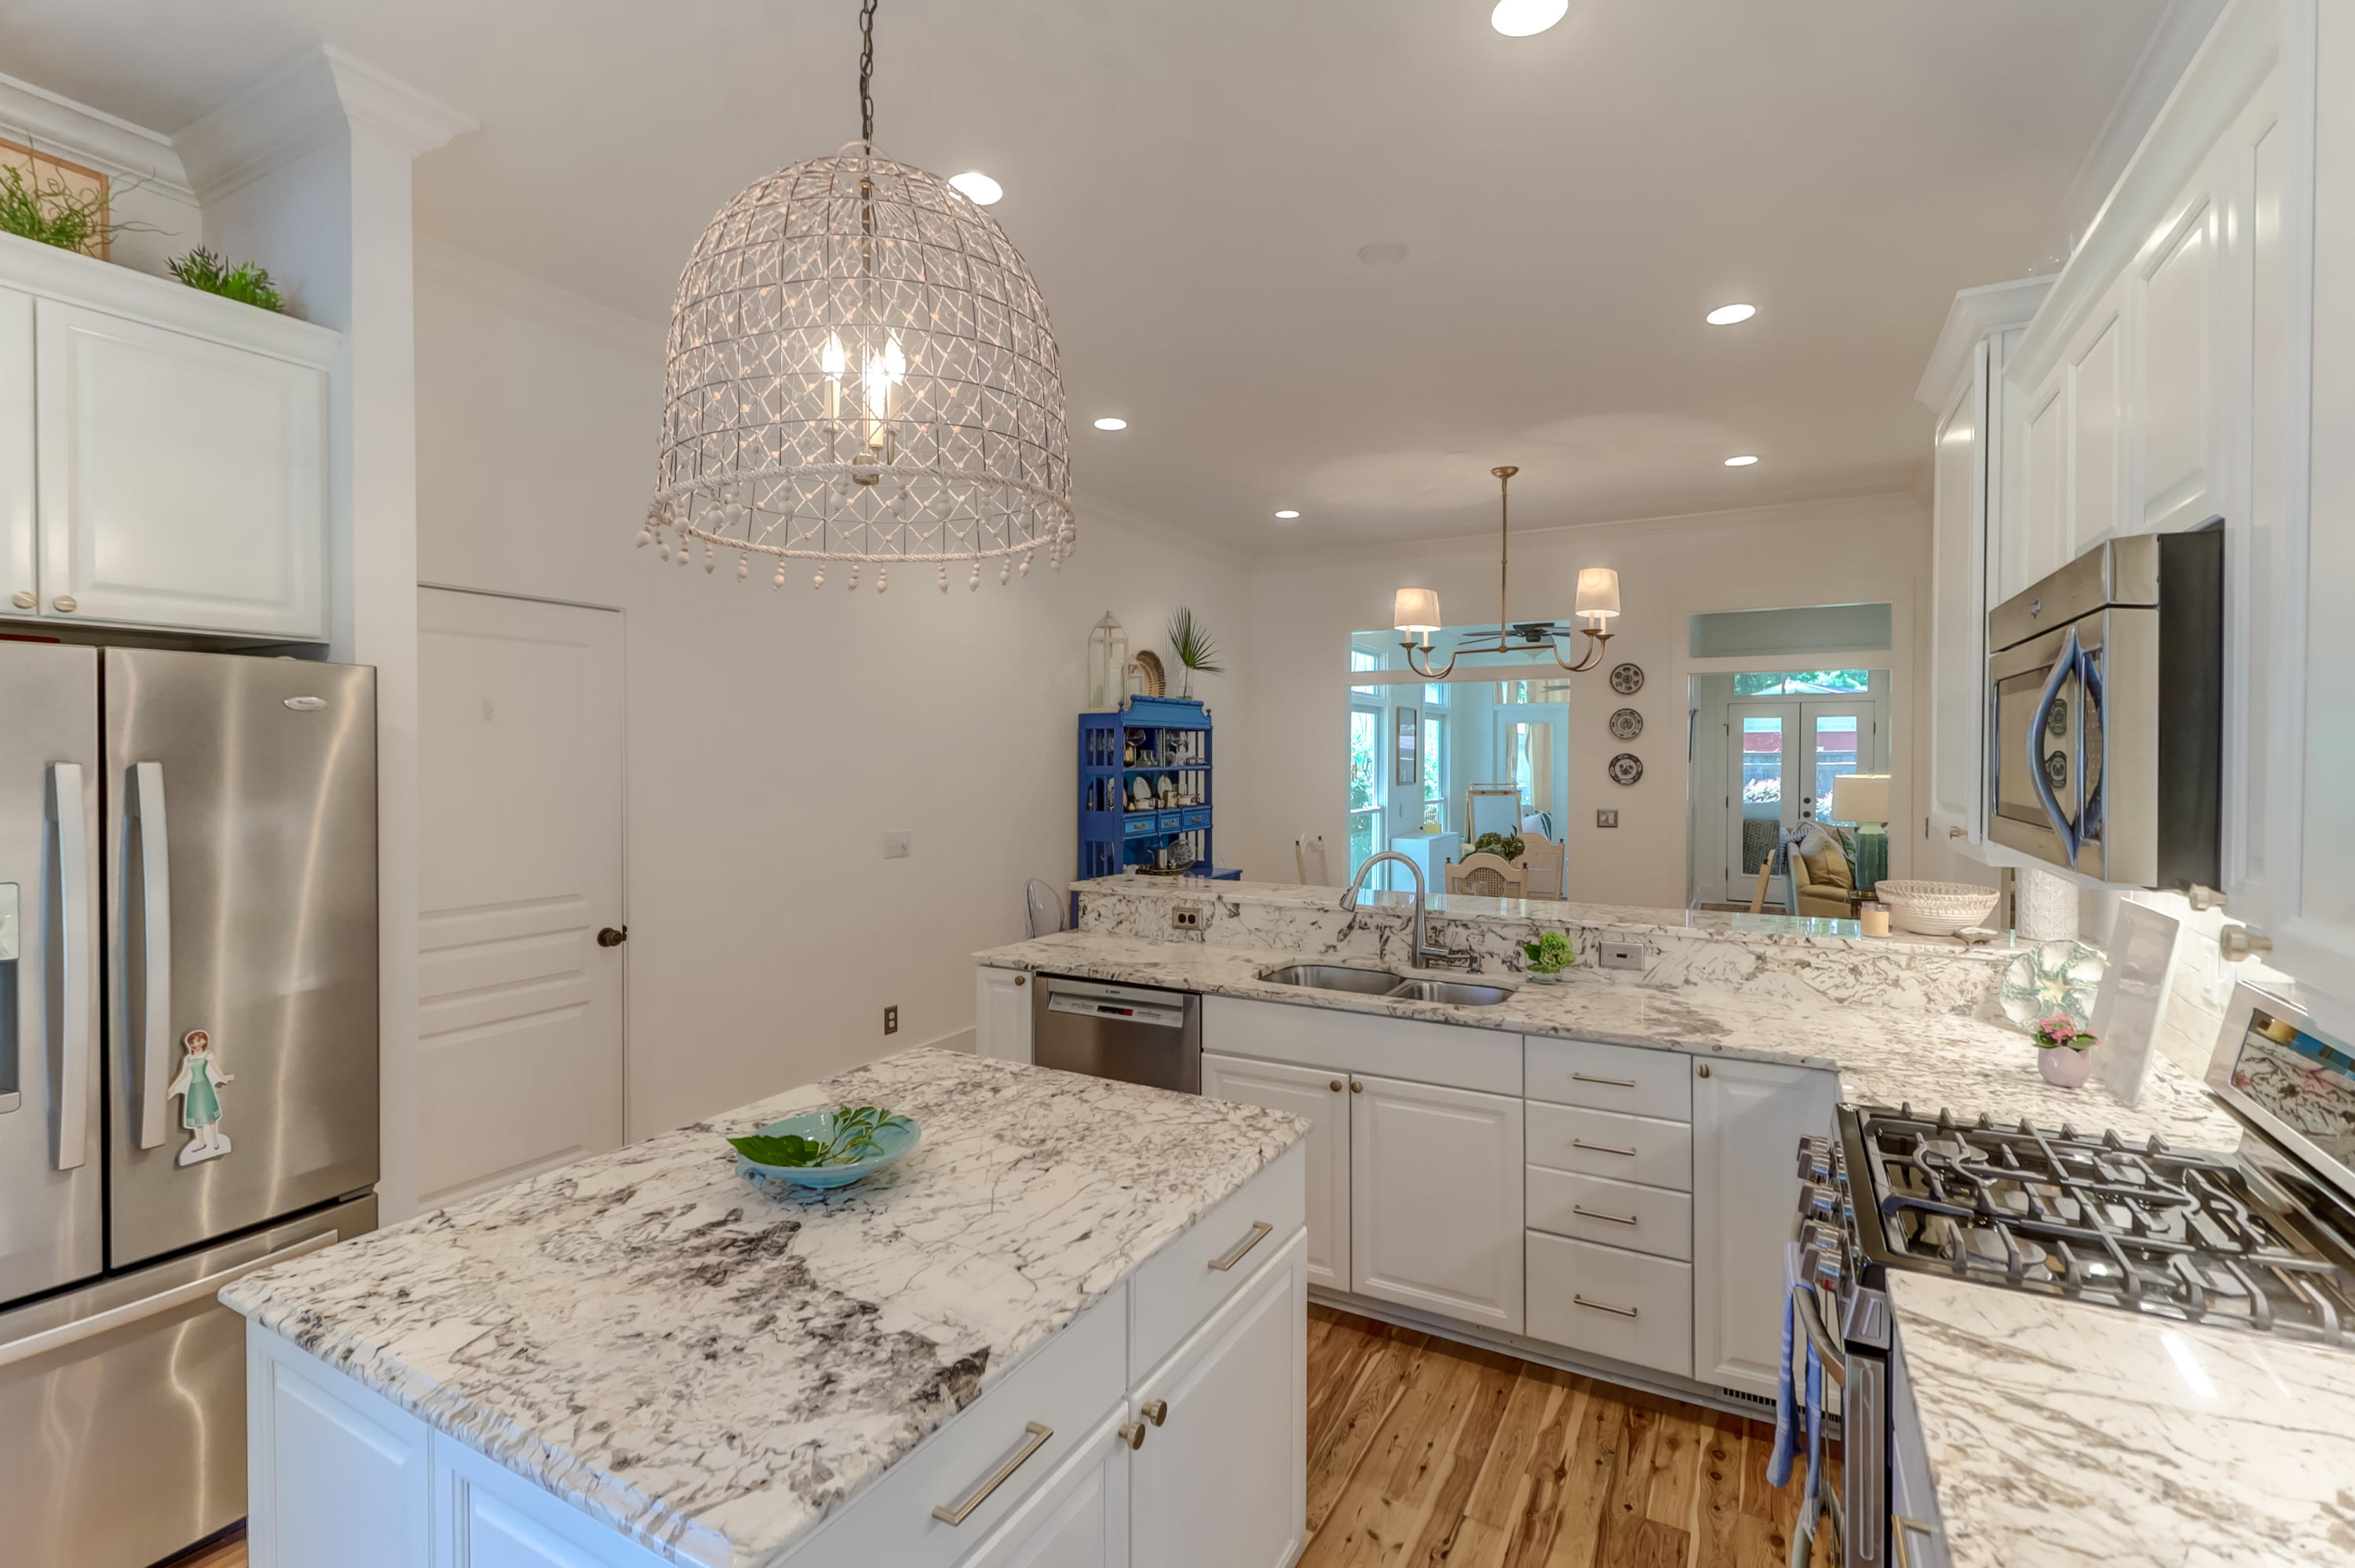 The Villages In St Johns Woods Homes For Sale - 5056 Coral Reef Dr, Johns Island, SC - 61